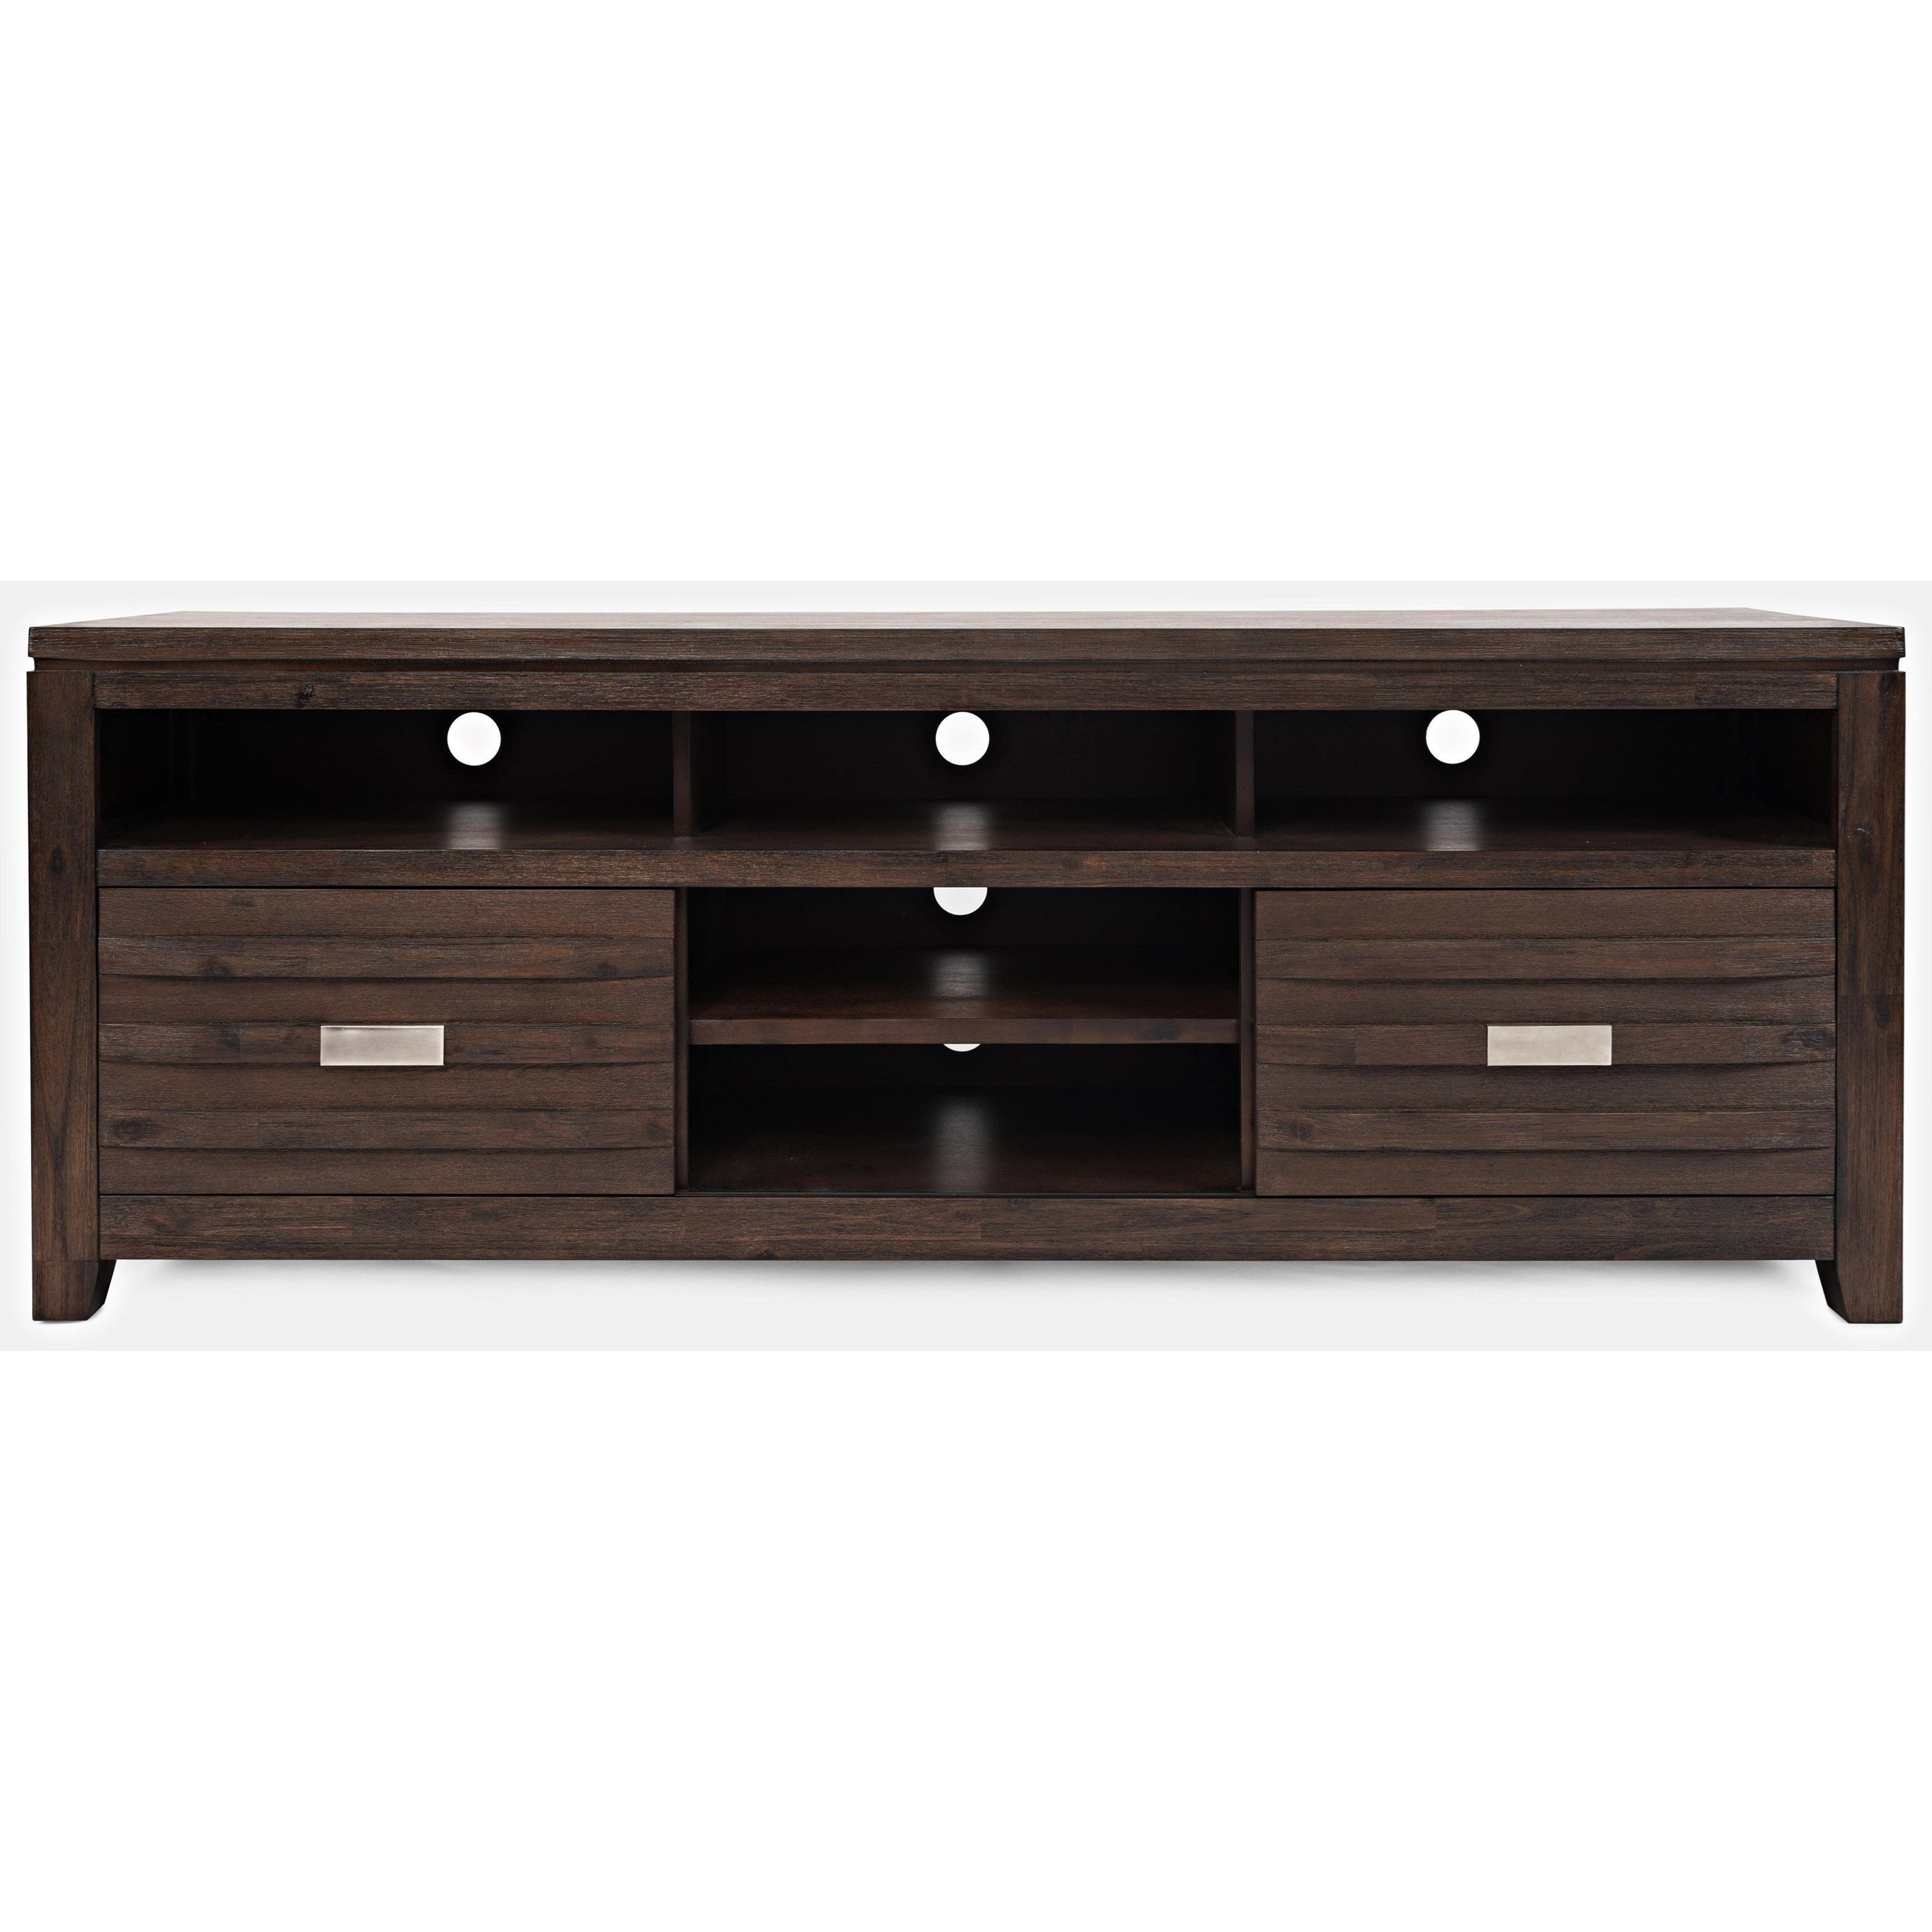 "Colebrook Colebrook  70"" Console by Jofran at Morris Home"